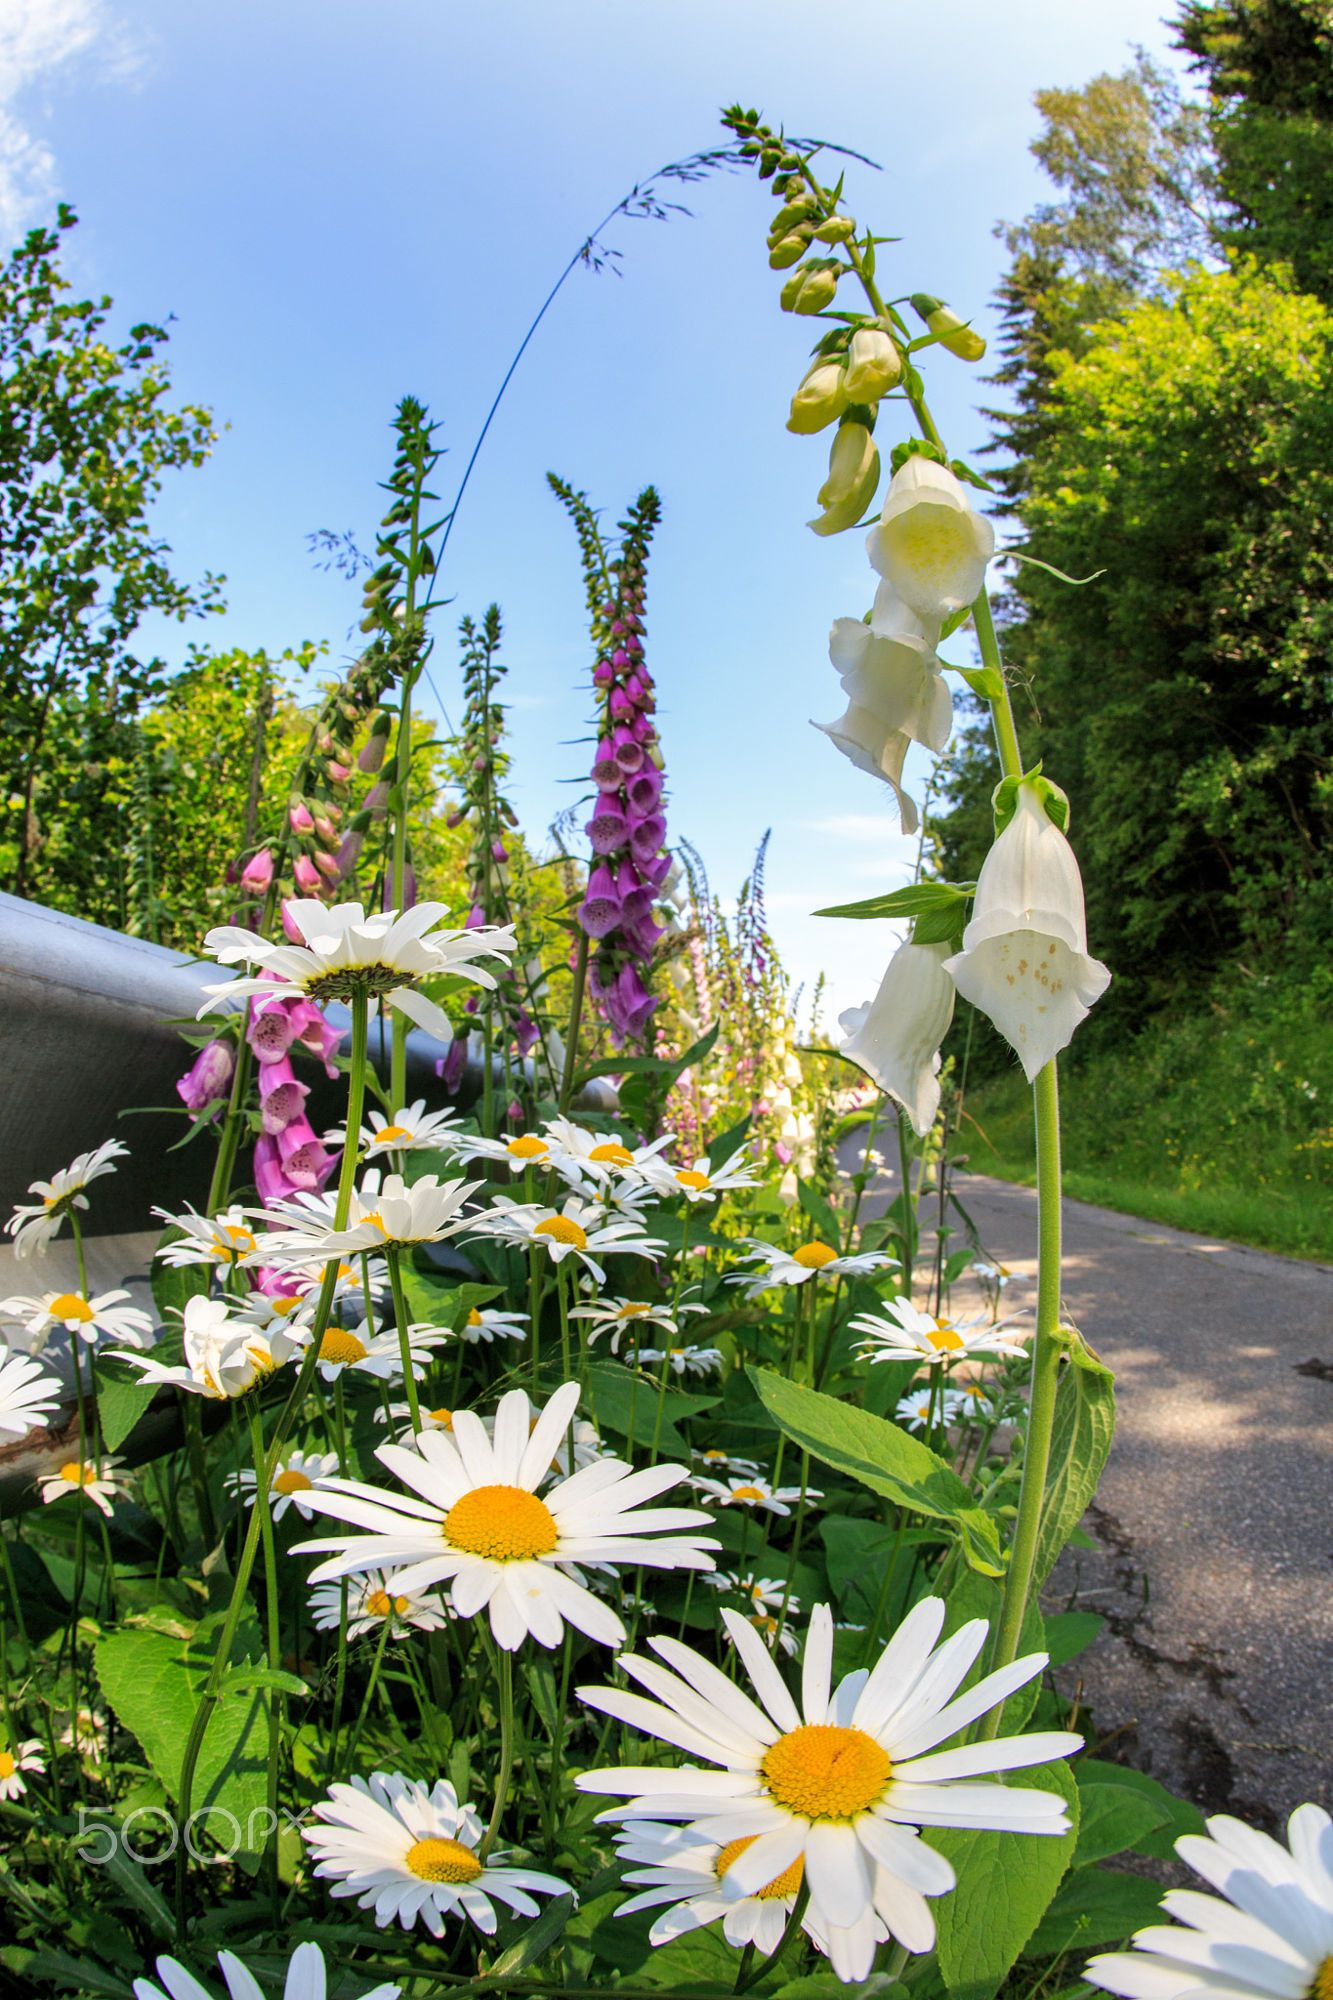 Summer flowers by May Elin Aunli on 500px